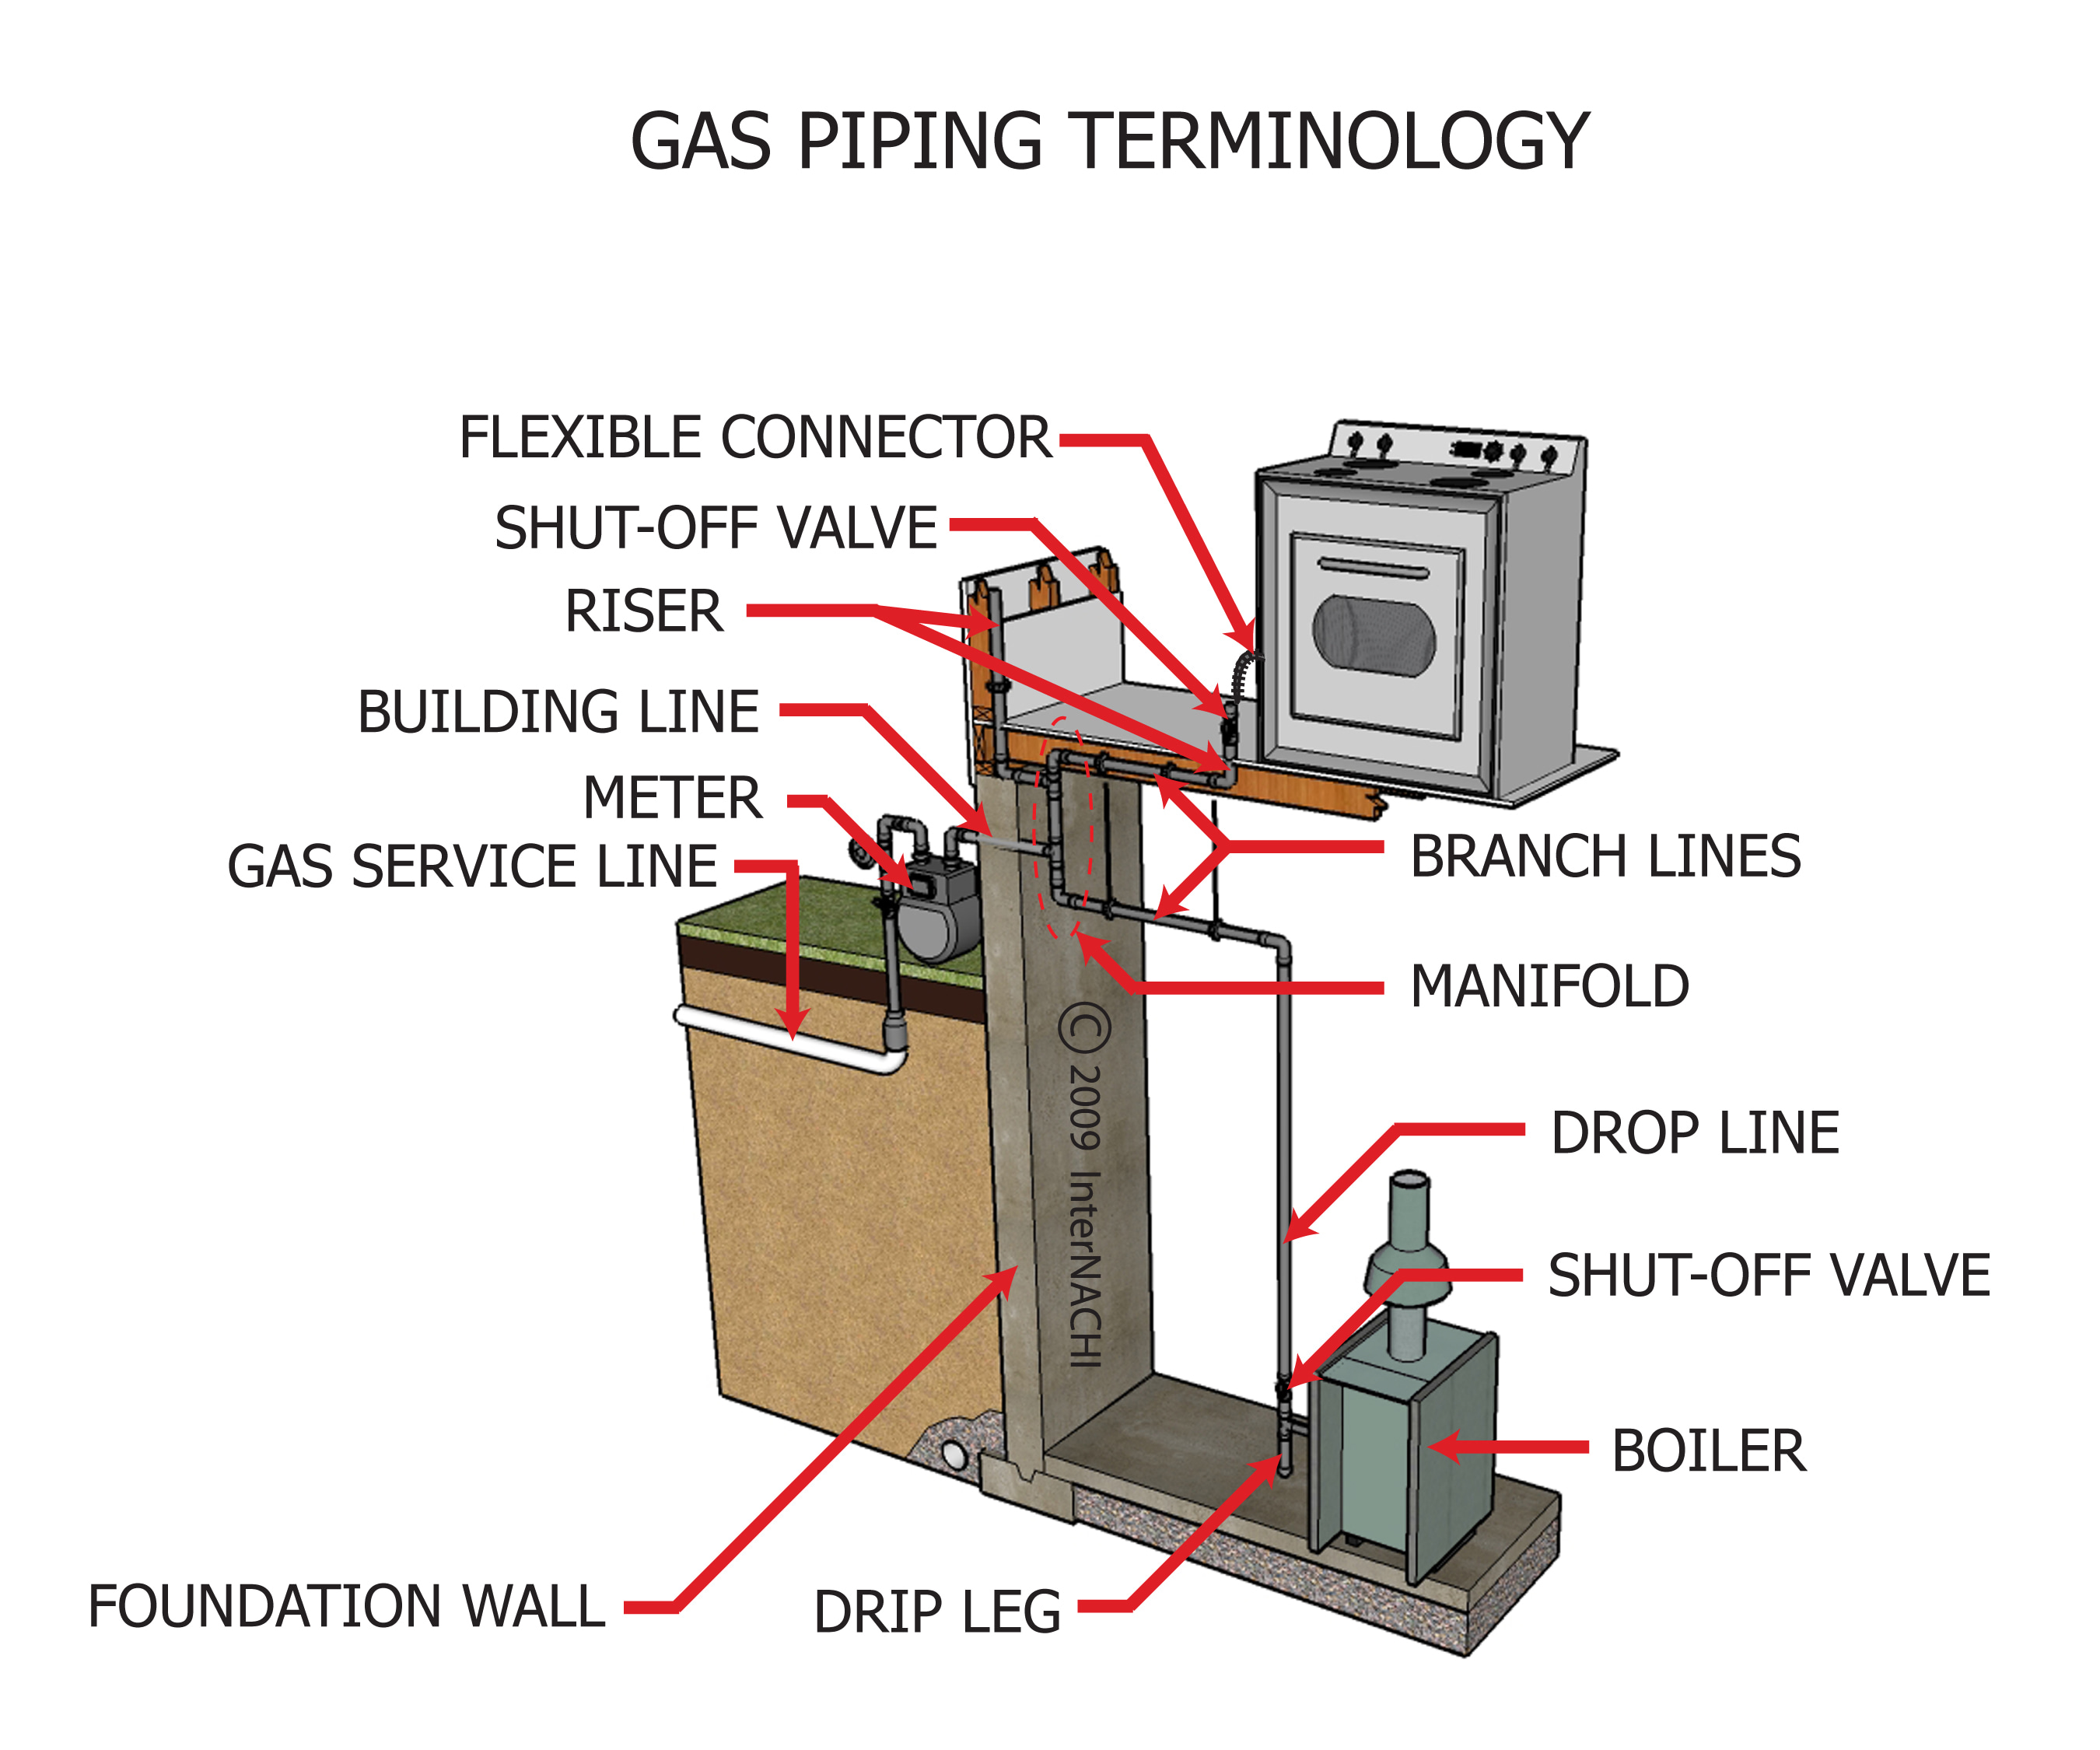 Gas piping terminology.